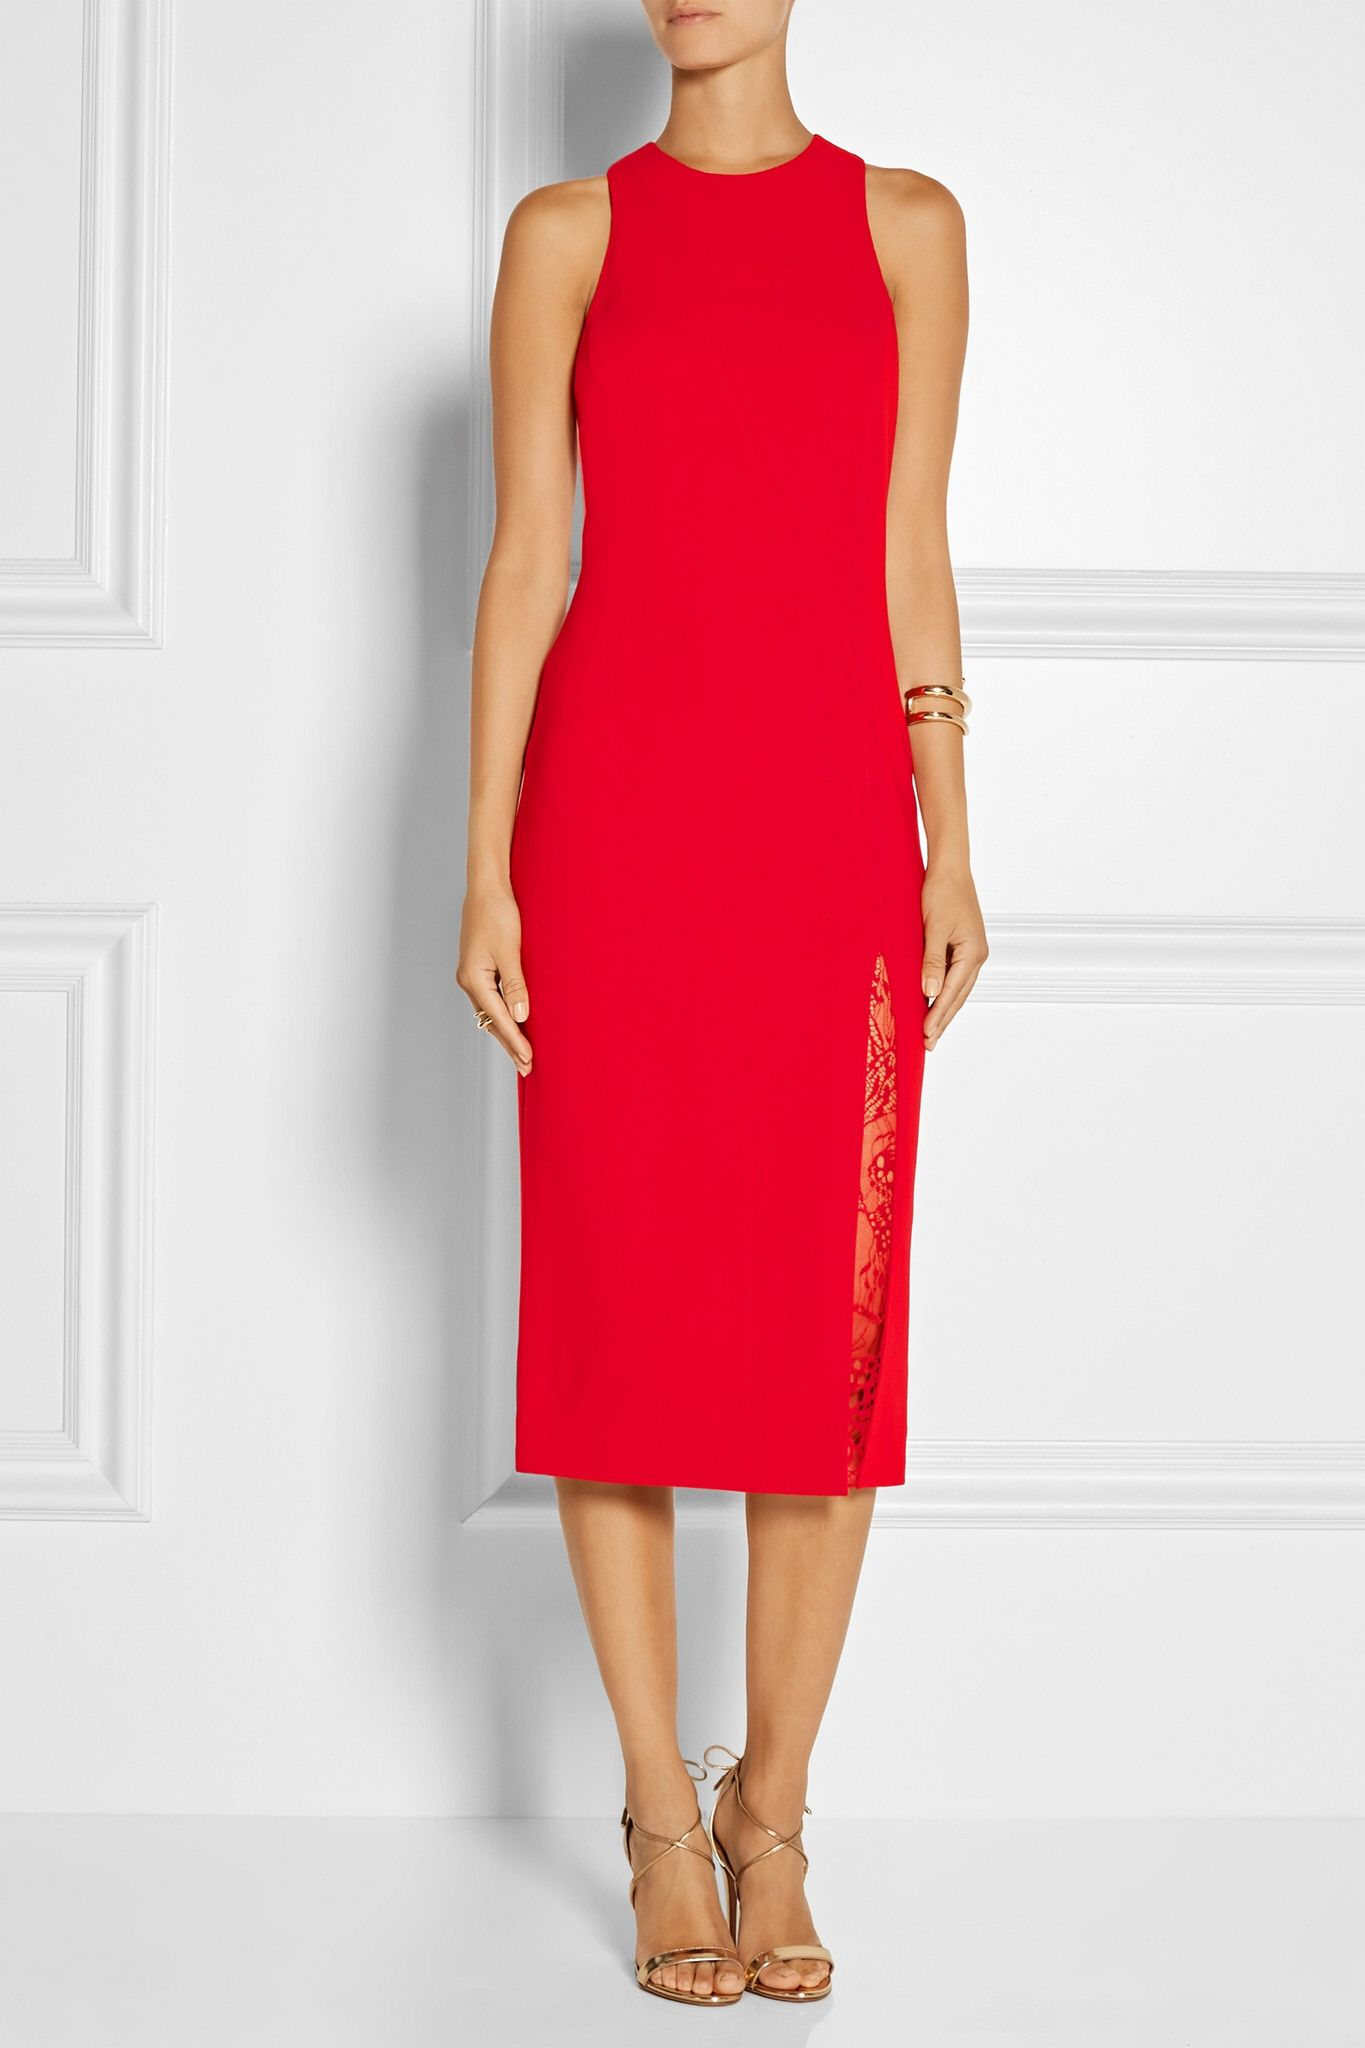 Tamara Mellon red with lace details dress